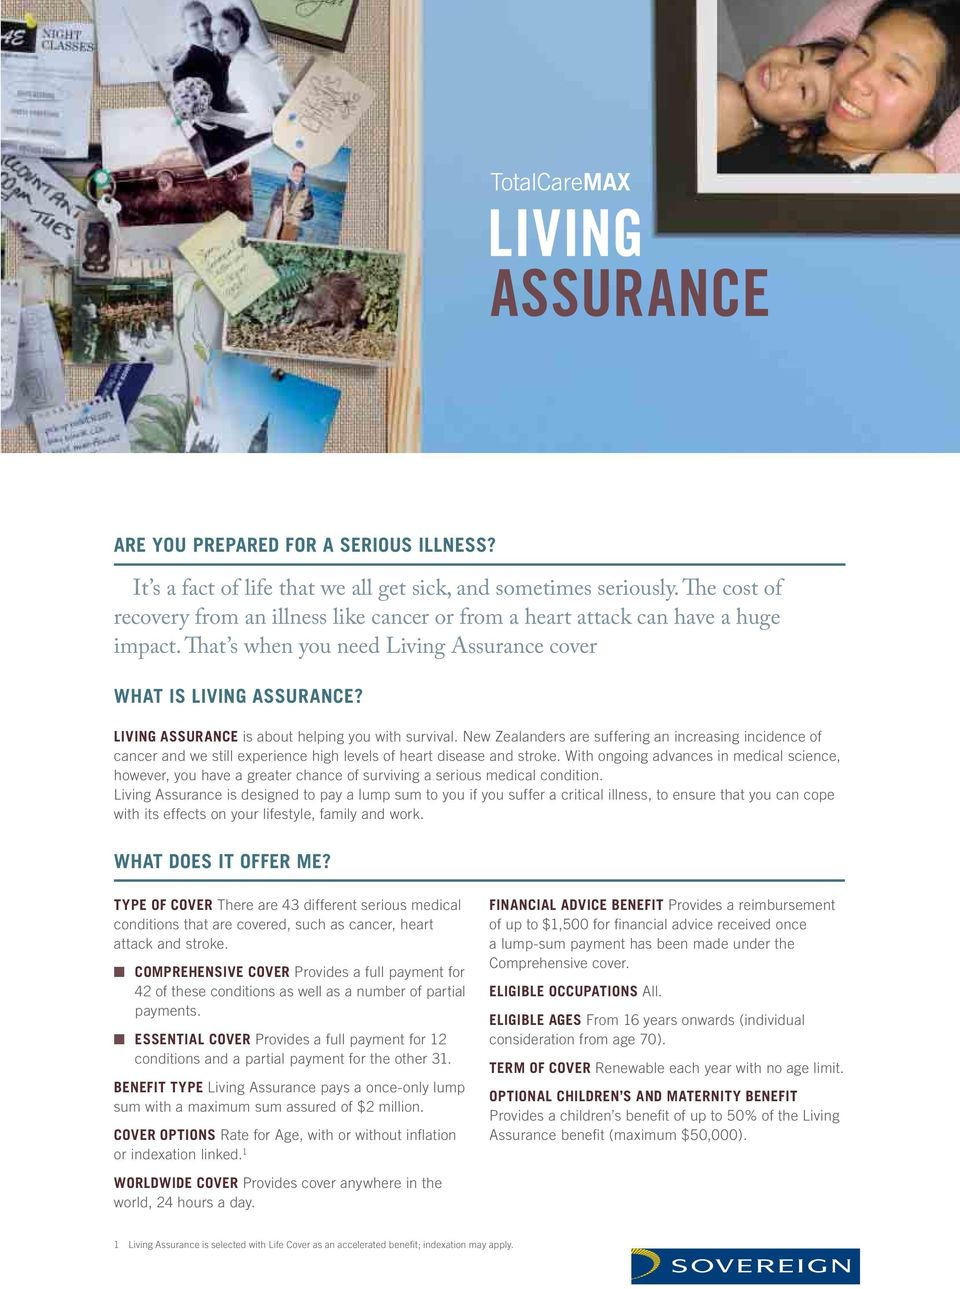 LIVING ASSURANCE is about helping you with survival. New Zealanders are suffering an increasing incidence of cancer and we still experience high levels of heart disease and stroke.